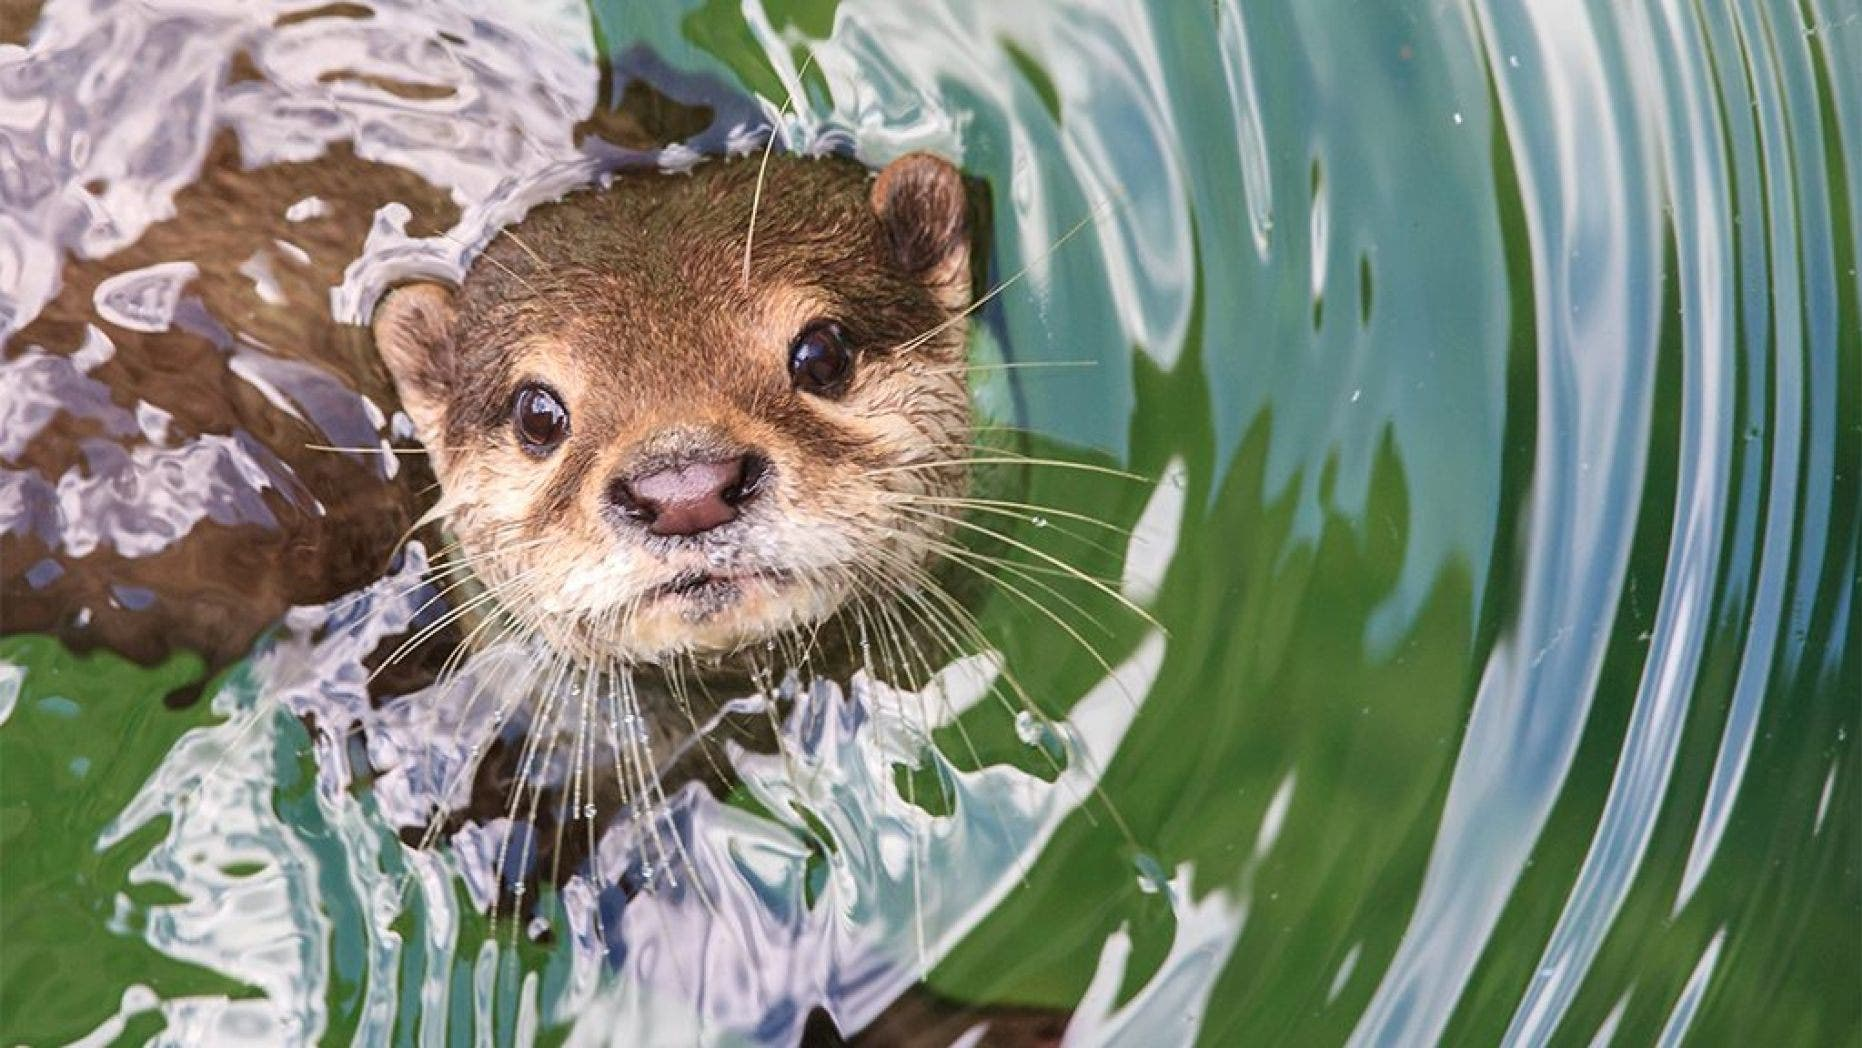 Authorities are investigating the disappearance of three rare river otters from an animal sanctuary.